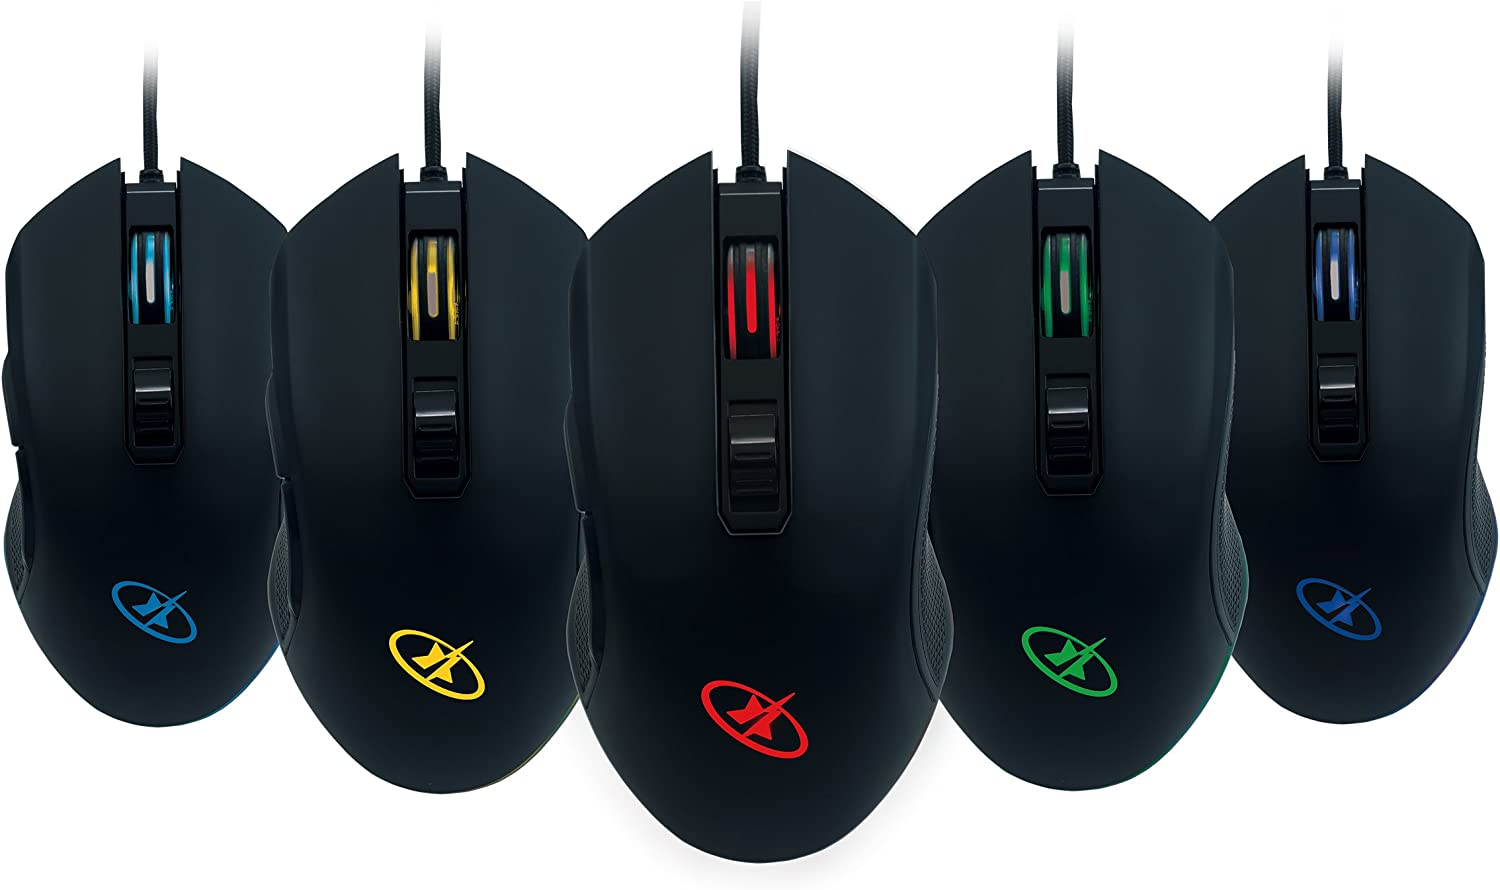 ROSEWILL RGB Gaming Mouse with LED Lighting, Wired USB Gaming Mice for Computer/ PC/ Laptop/ Mac Book with 4000 DPI Optical Gaming Sensor and Ergonomic Design with 6 Buttons